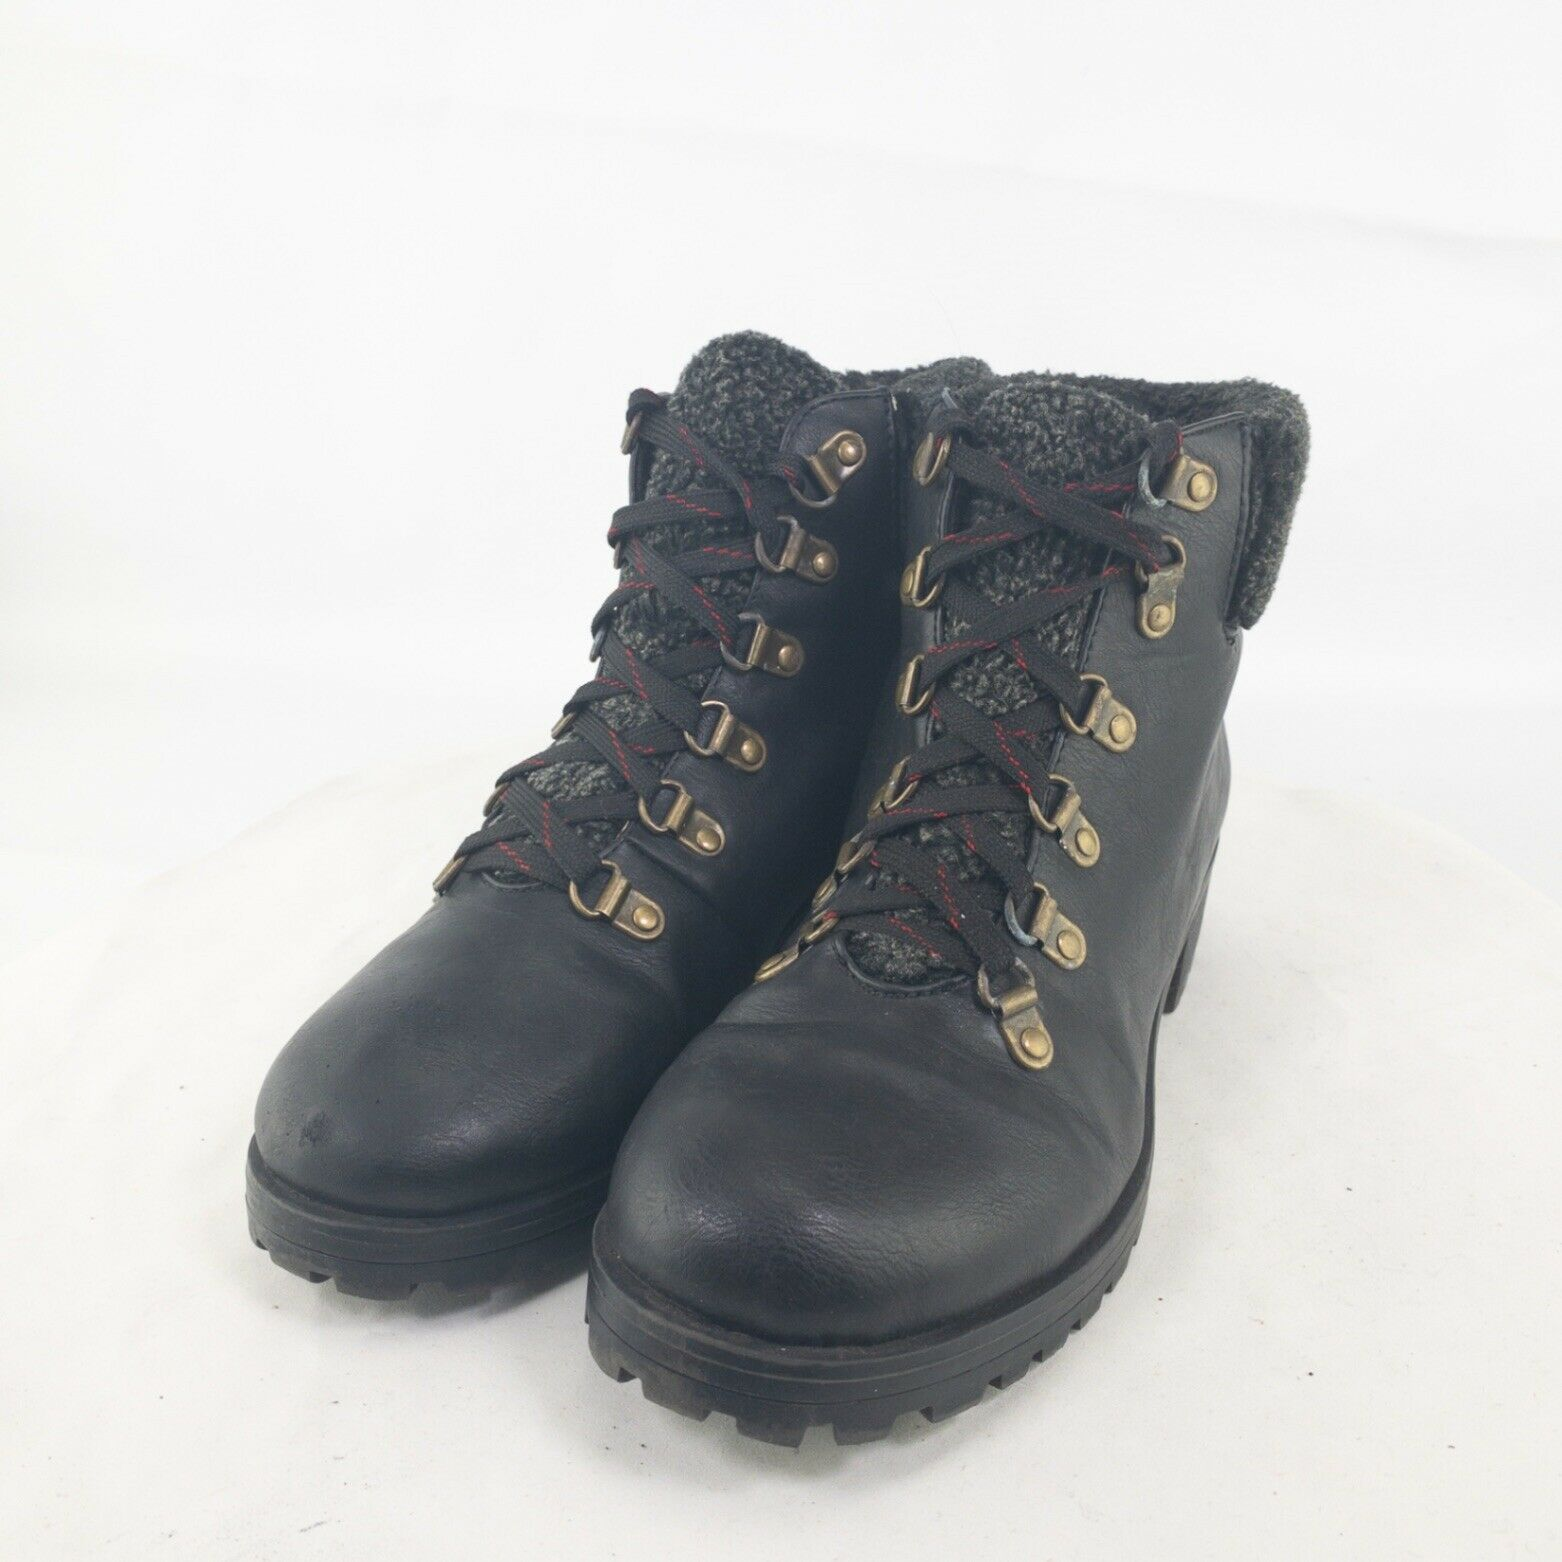 Shoedazzle Womens Black Leather Round Toe Lace Up Ankle Combat Boots Size US 9